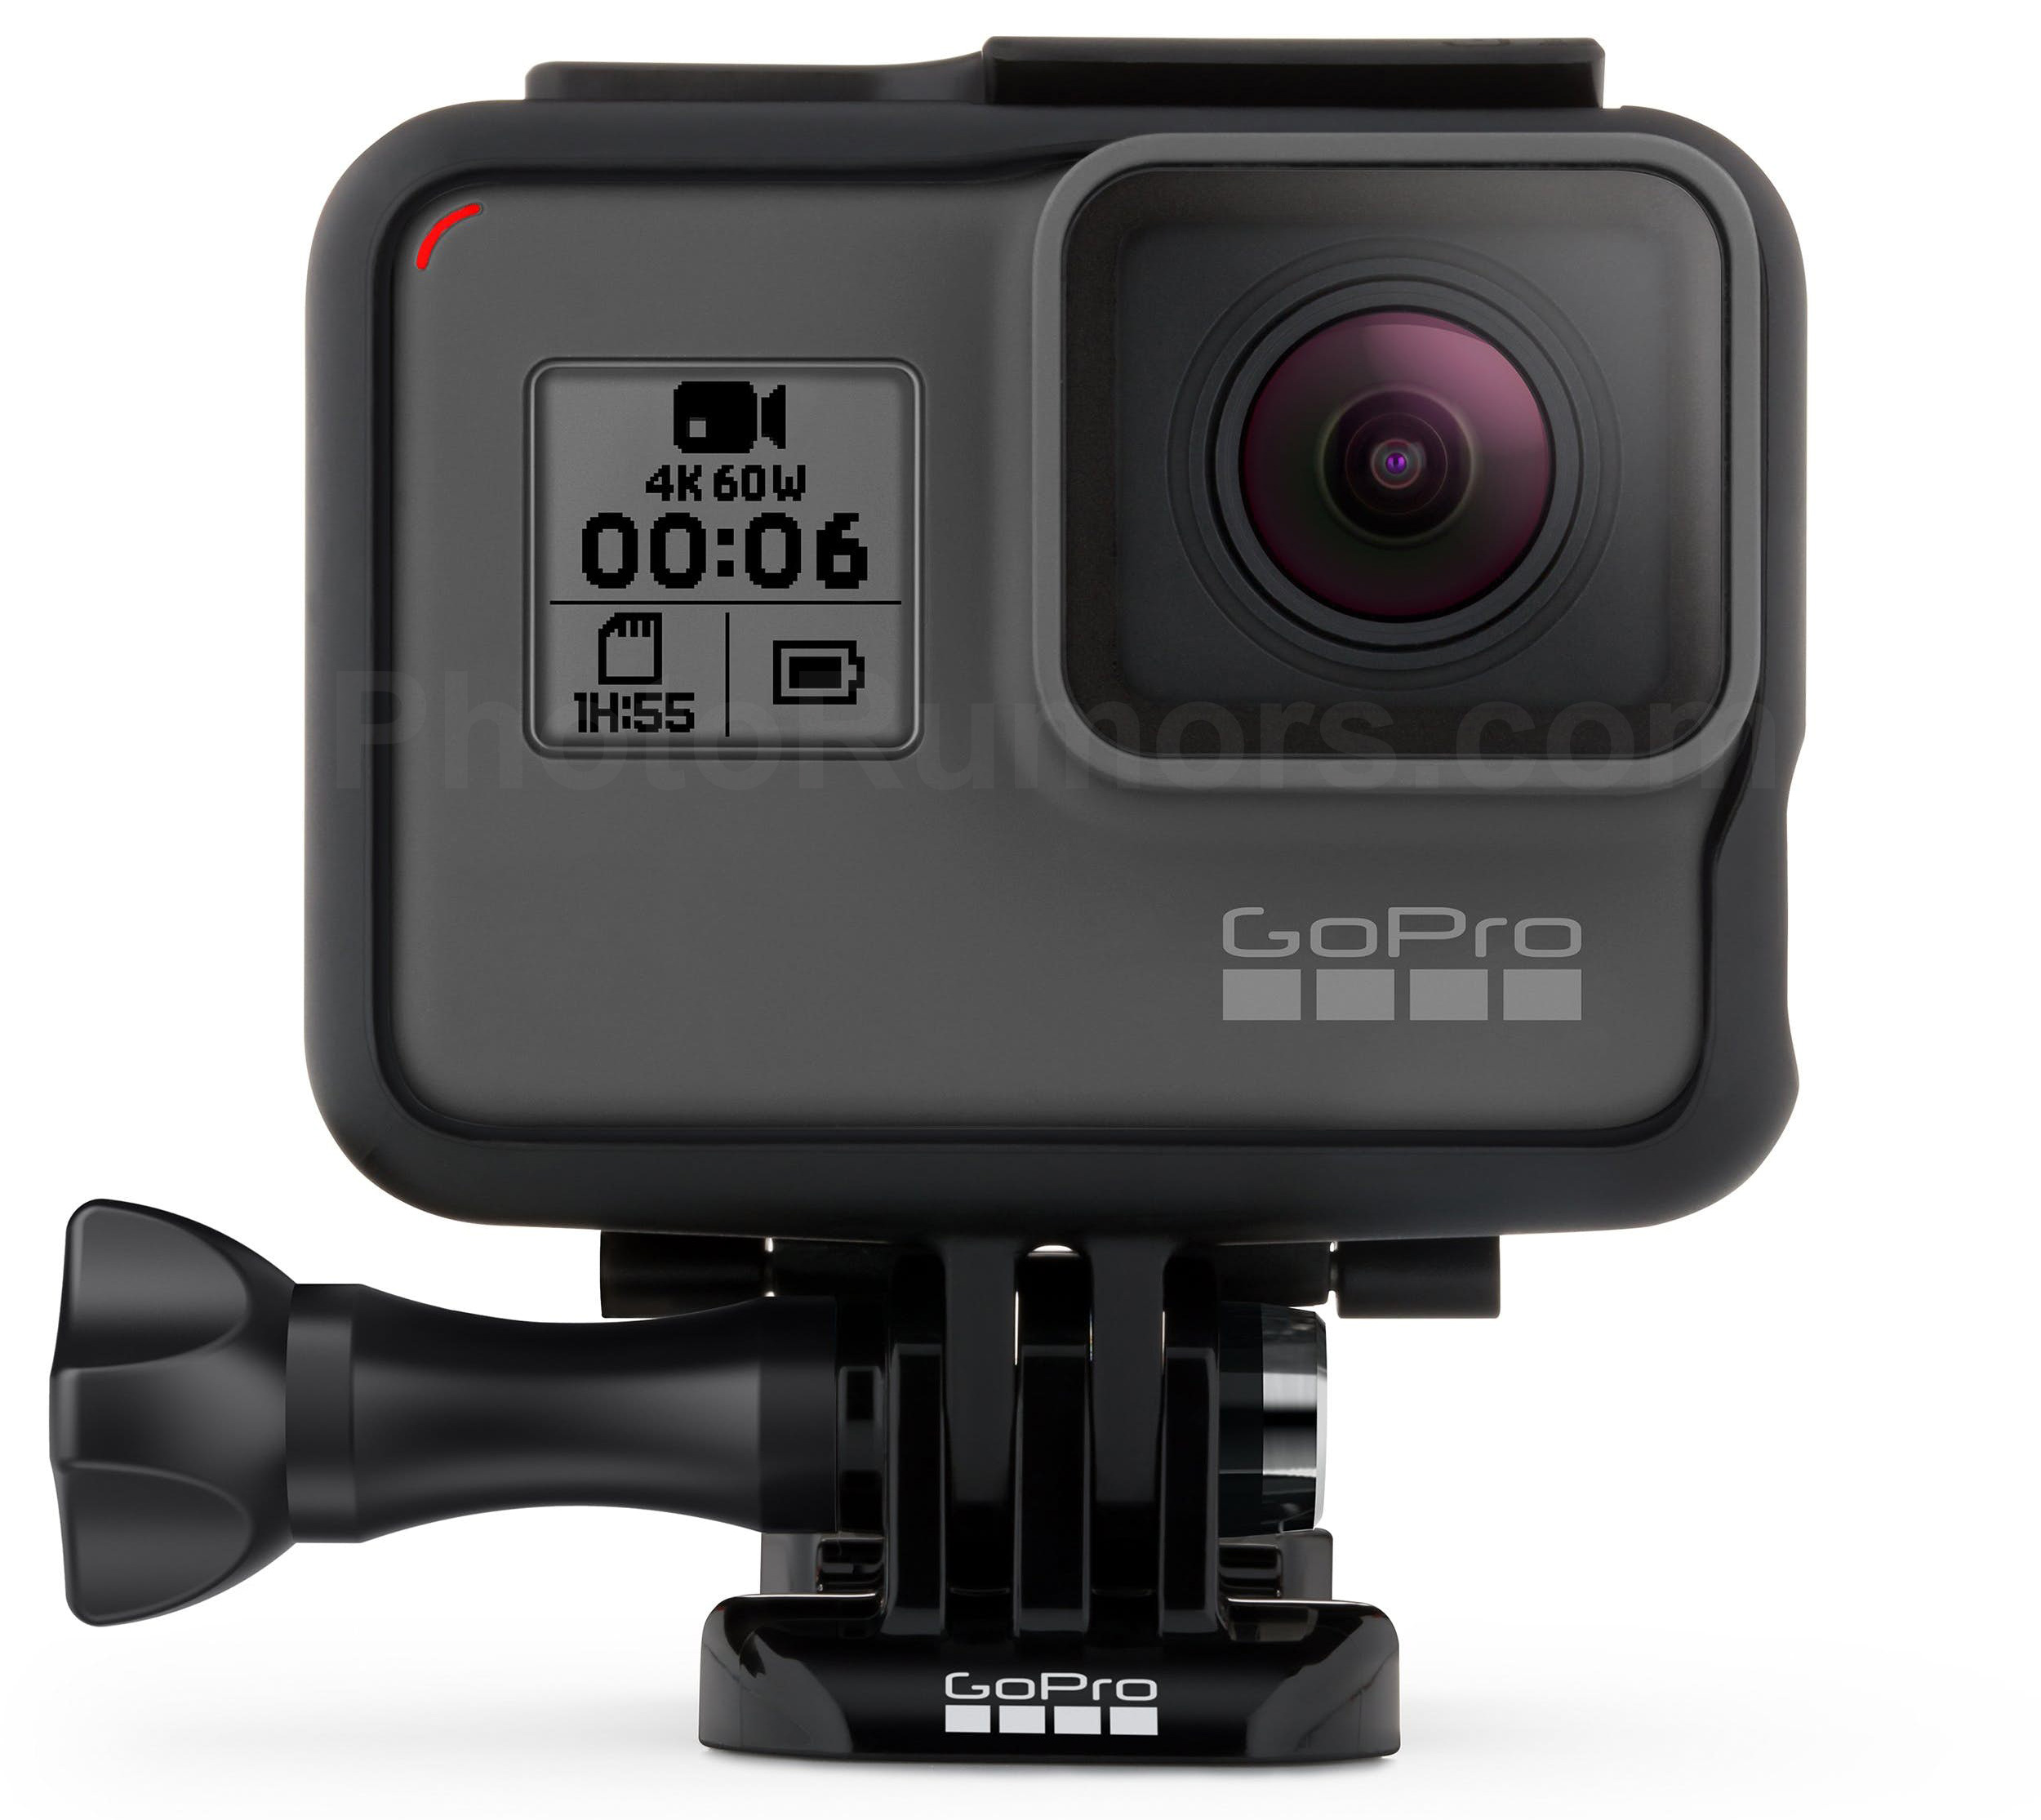 drone filming with Gopro Hero 6 Black Camera Additional Info on Mars Curiosity Rover moreover Projects likewise Cinedrones Warum Drohnen Zum Filmen Perfekt Sind also Product further Data Cabi  Patch Panel Installation.